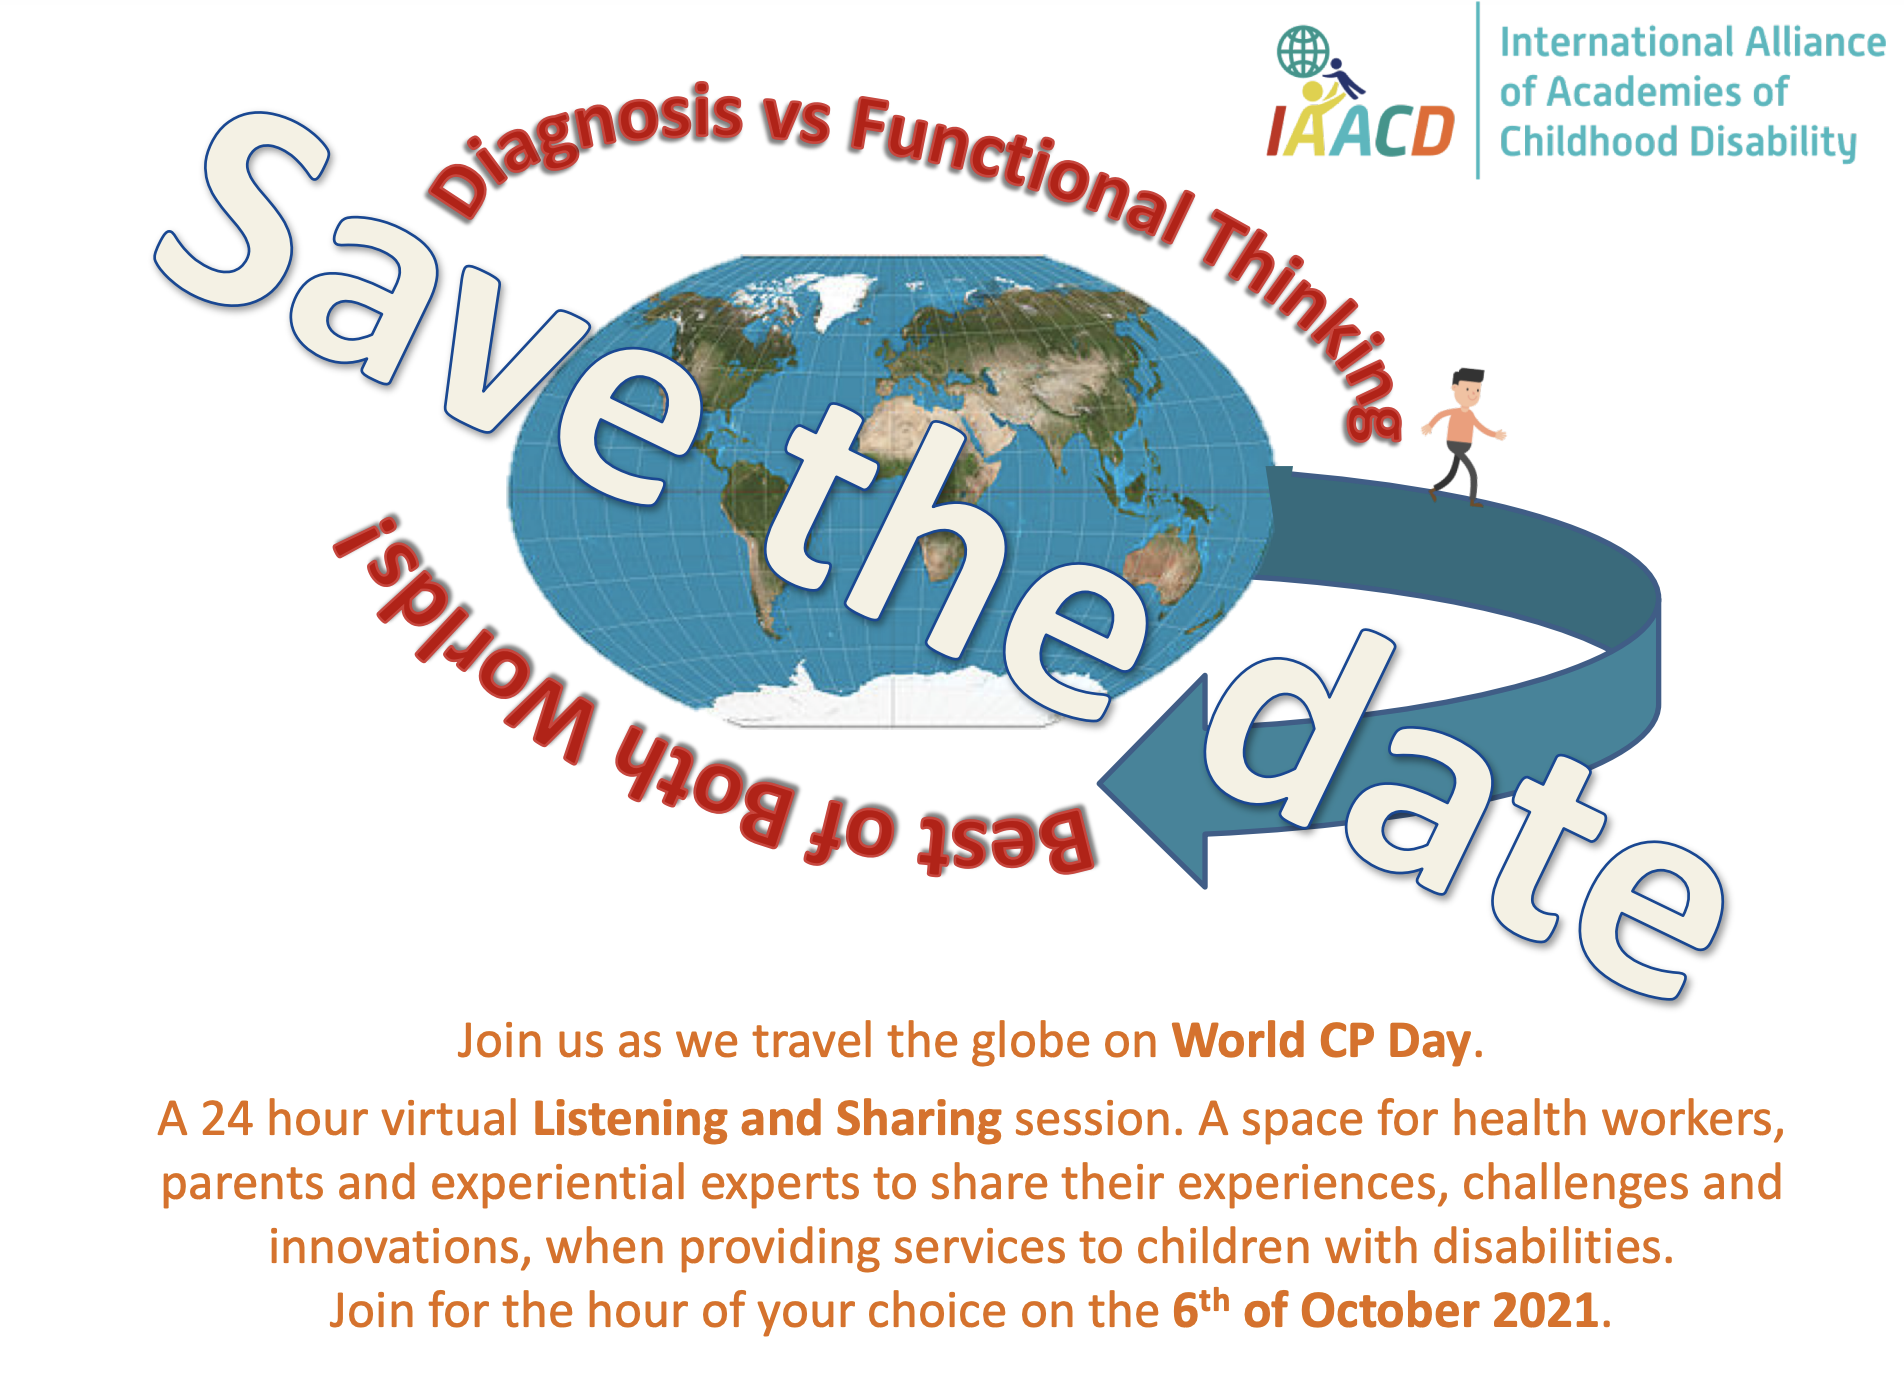 World CP day save the day image